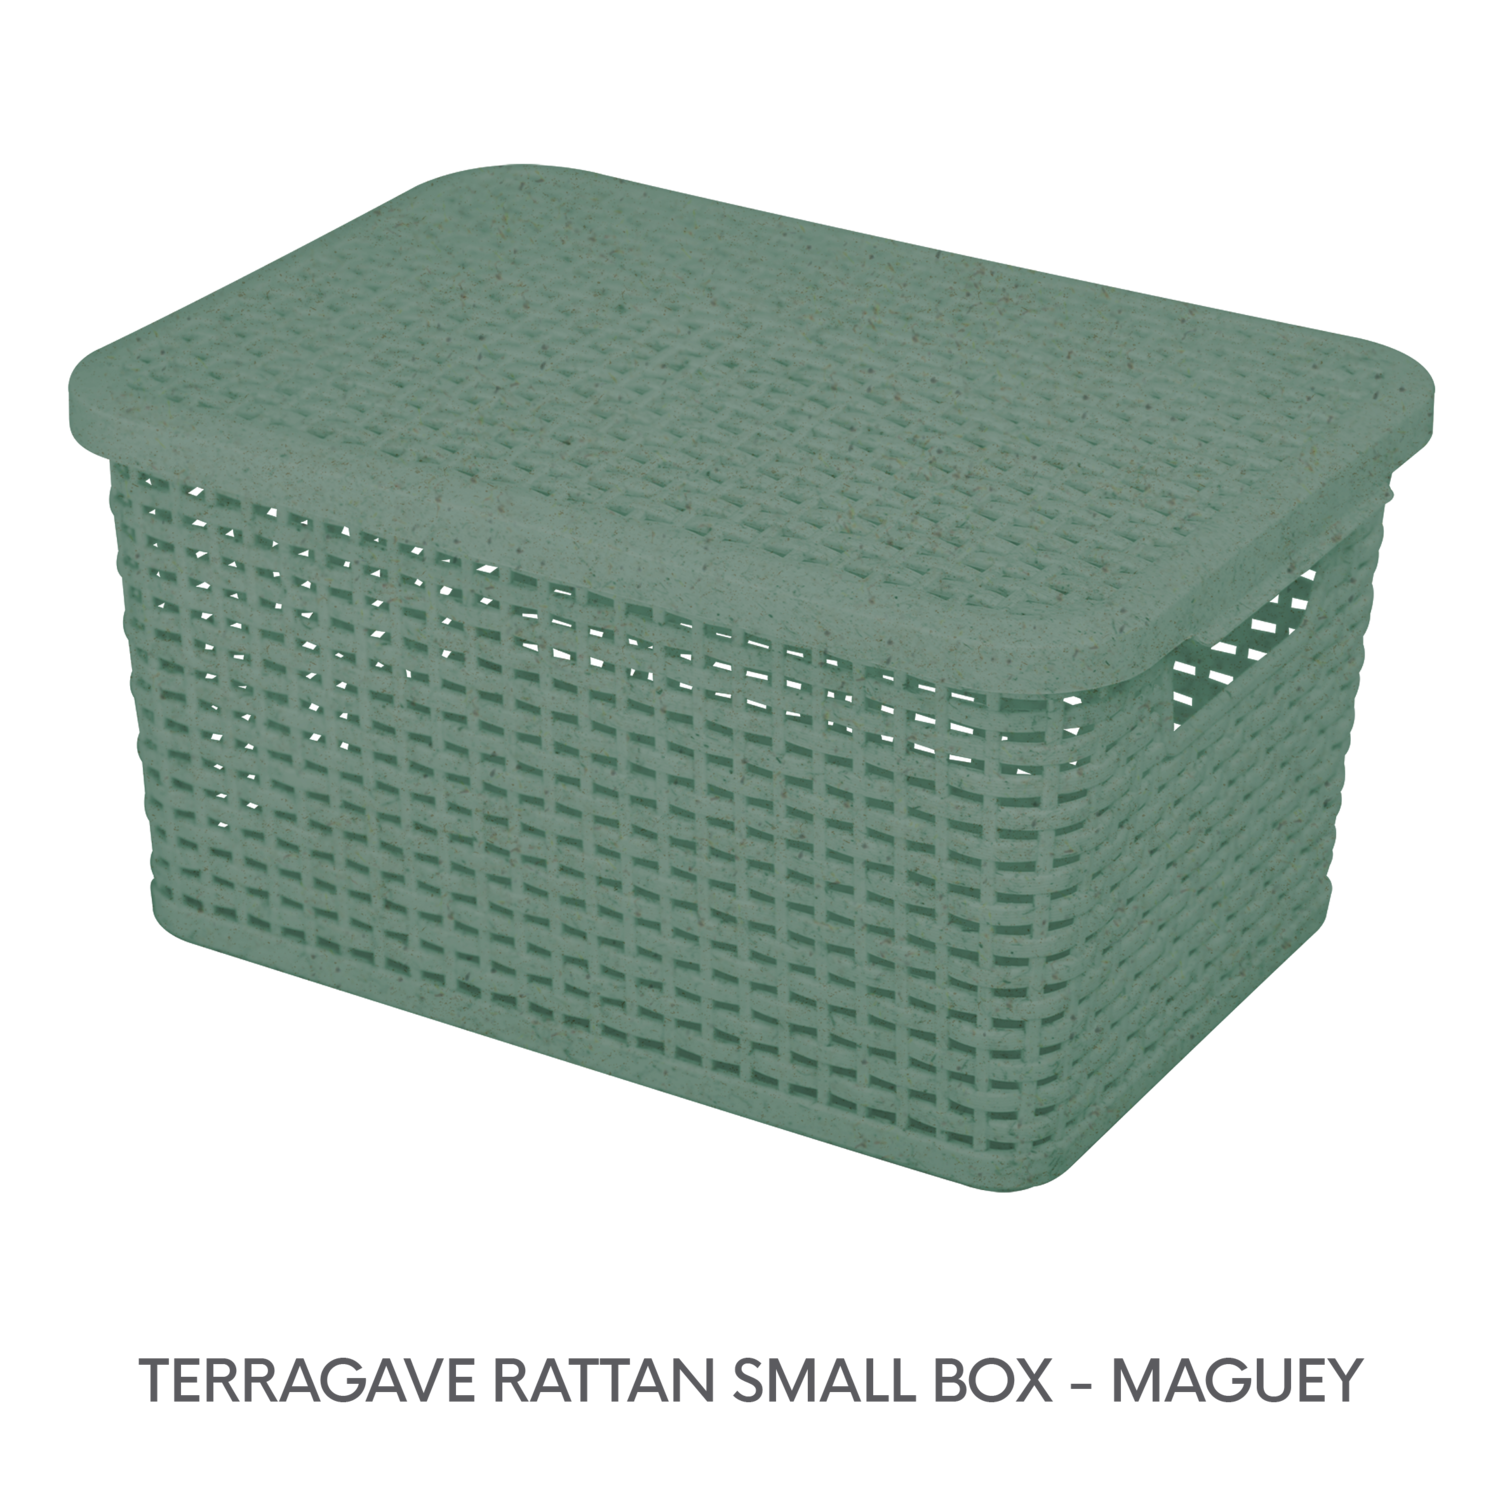 4 TERRAGAVE RATTAN SMALL BOX -MAGUEY.png